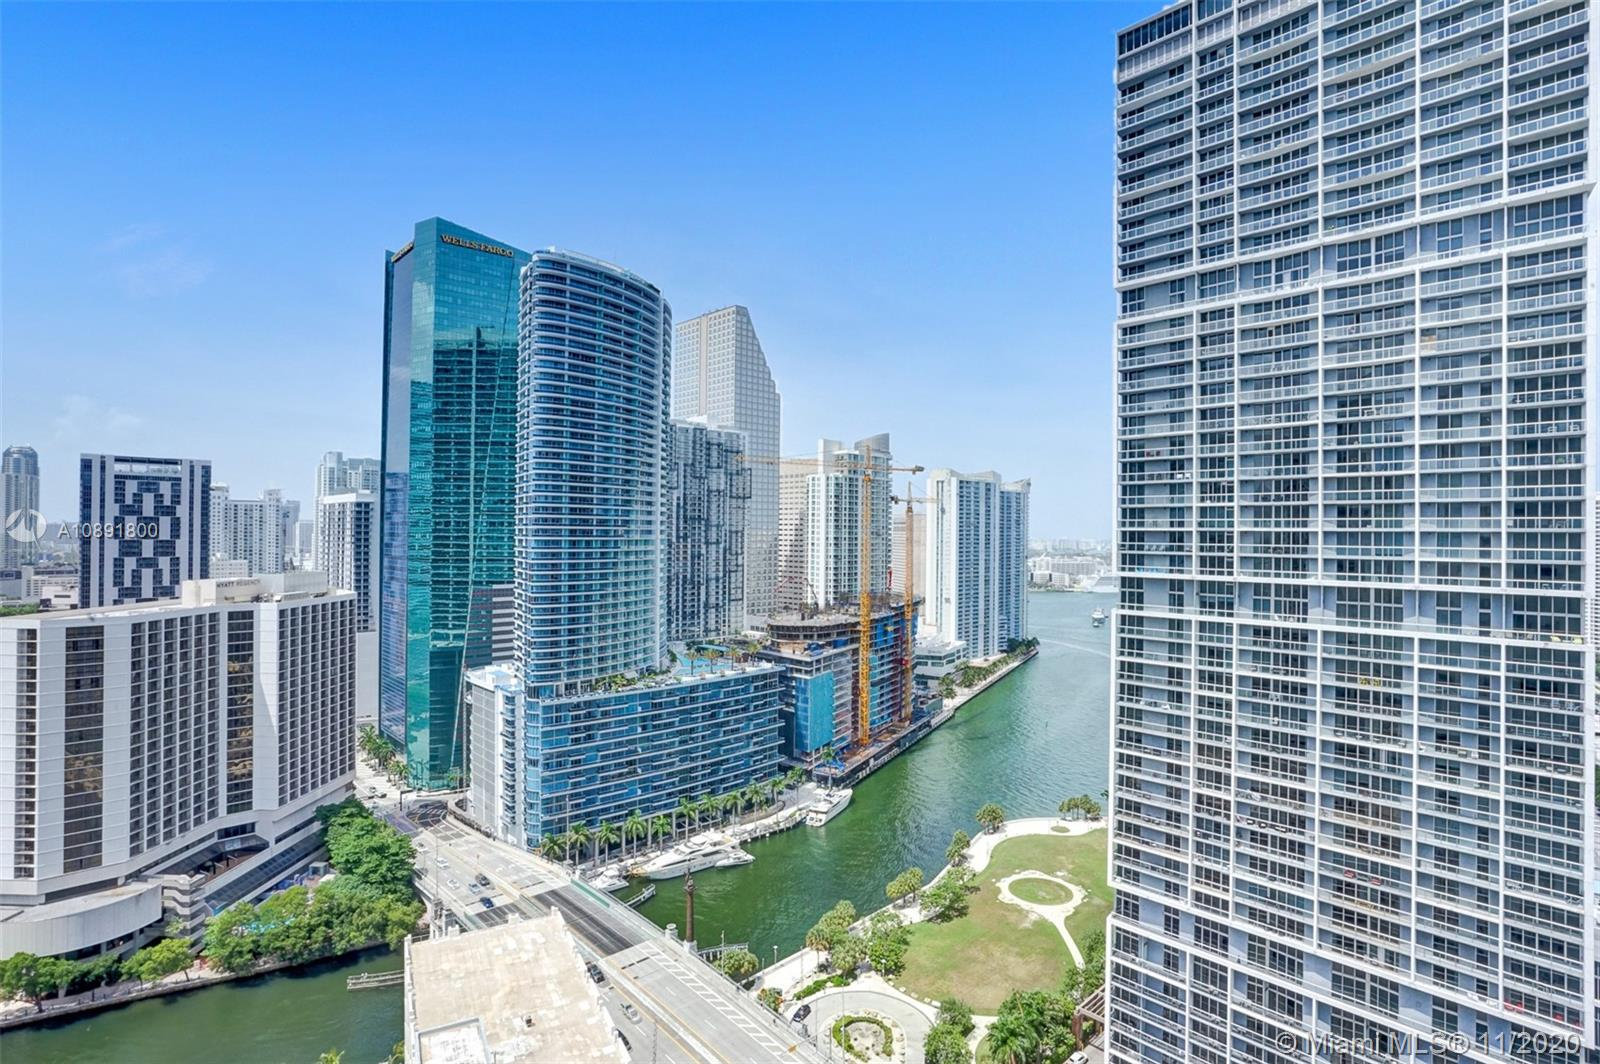 Come see this Spectacular split floorplan unit at 500 Brickell Condo. It is the most remodeled unit I have seen in the whole development. Marble floors throughout, Custom ceilings with accent LED lighting, TV's built in to Bathroom walls, Venetian plaster accent walls, Built out Custom Closets & Motorized shades on all windows. Unit faces the mouth of the Miami River leading to Biscayne Bay, which the Water can be seen from both bedrooms & living room. A NE Water View that will never be taken away in the future. The development is located right on Brickell Ave. Cafes, Restaurants, Bars, Salon, Dry Cleaners, Banks, etc just downstairs in retail space of the bldg. Amenities include 2 Pools, Large Gym, Spa, Movie Theatre, Billiards, Party Rooms, 24 HR Doorman & Business Center. INC. Cable/Int